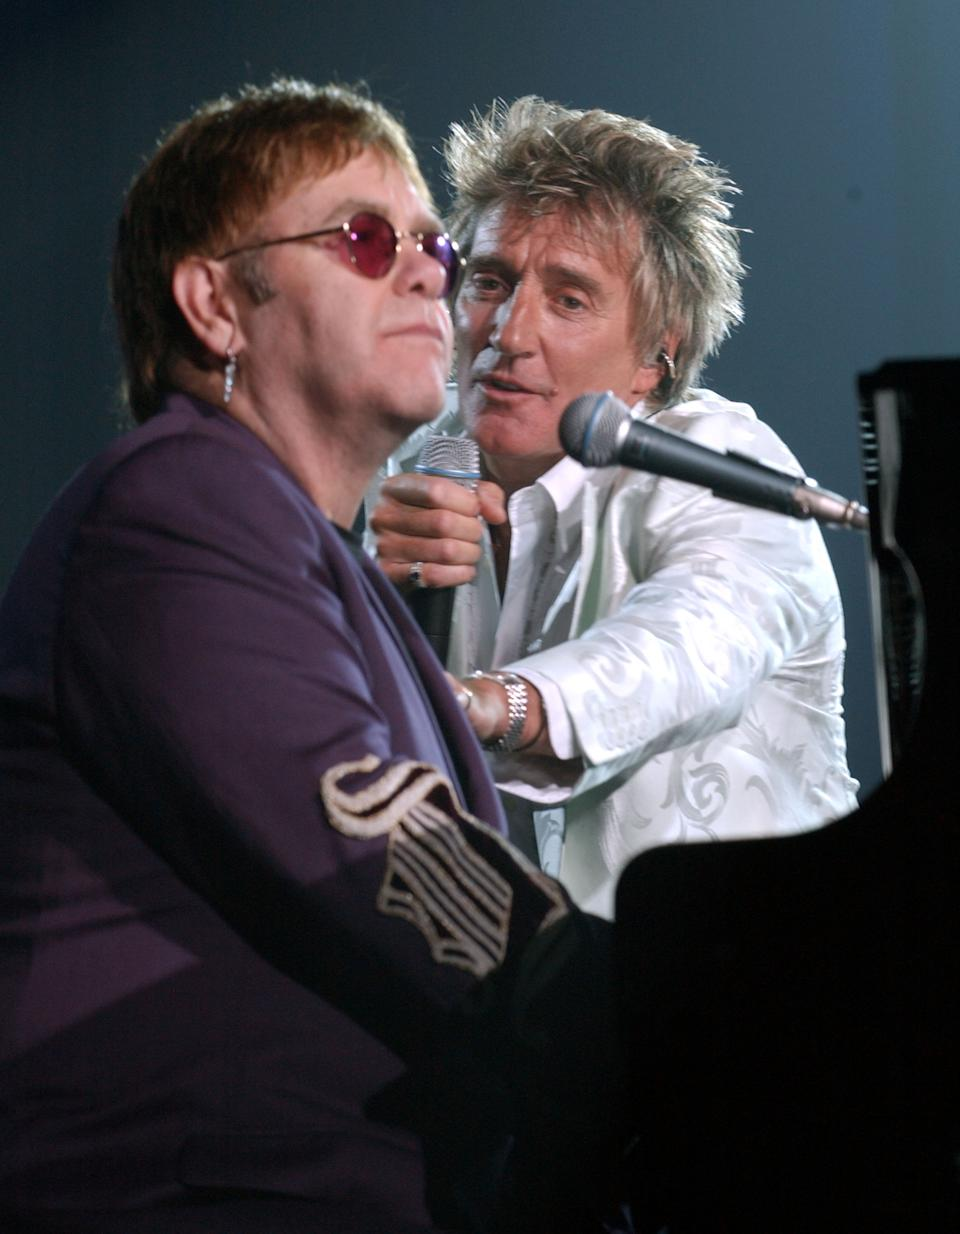 Sir Elton John and Rod Stewart during The Andre Agassi Charitable Foundation's 7th Grand Slam for Children Fundraiser - Show at The MGM Grand Hotel and Casino in Las Vegas, Nevada, United States. (Photo by Denise Truscello/WireImage)